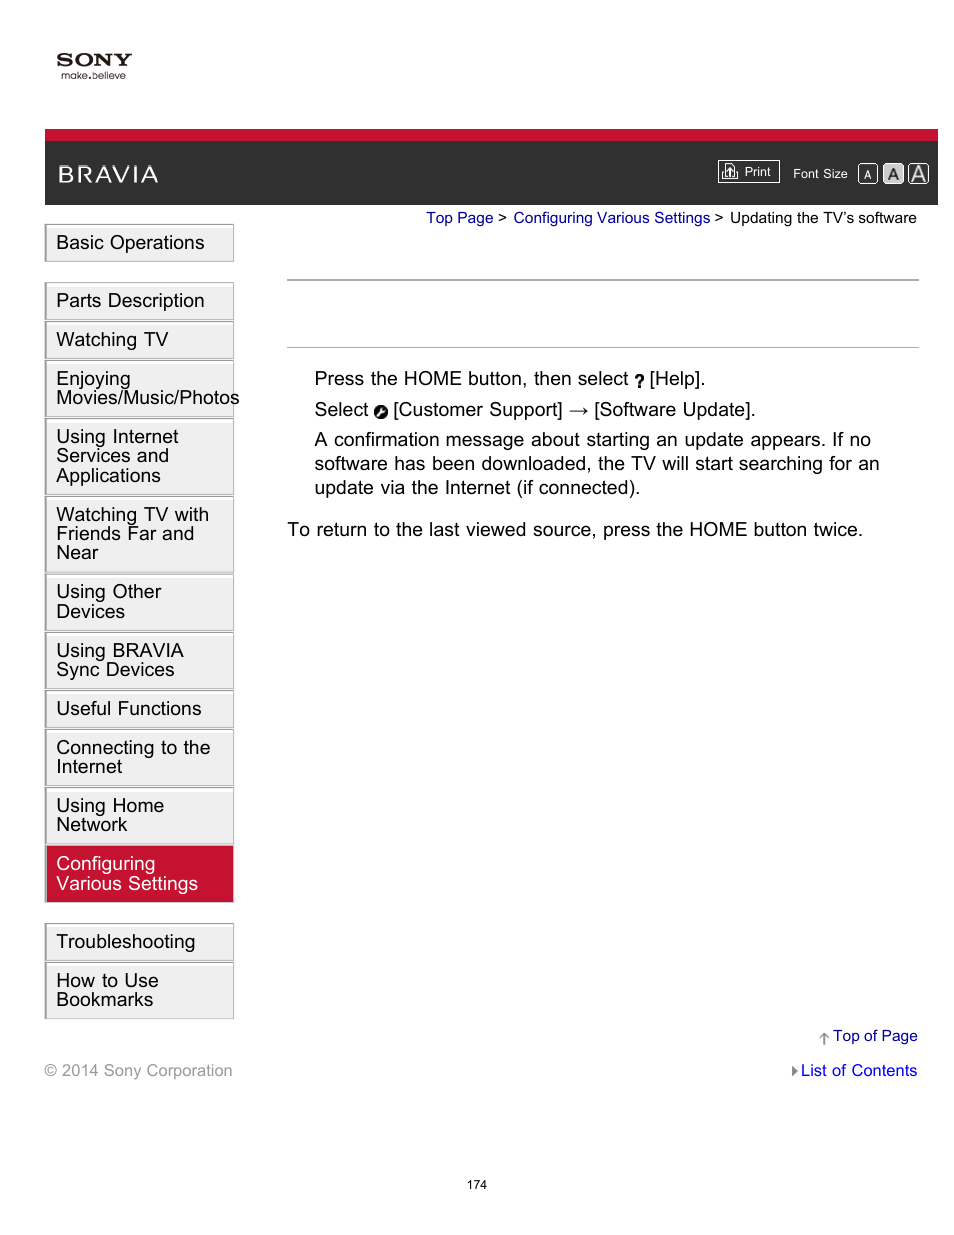 Updating the tv's software | Sony KDL-40W600B User Manual